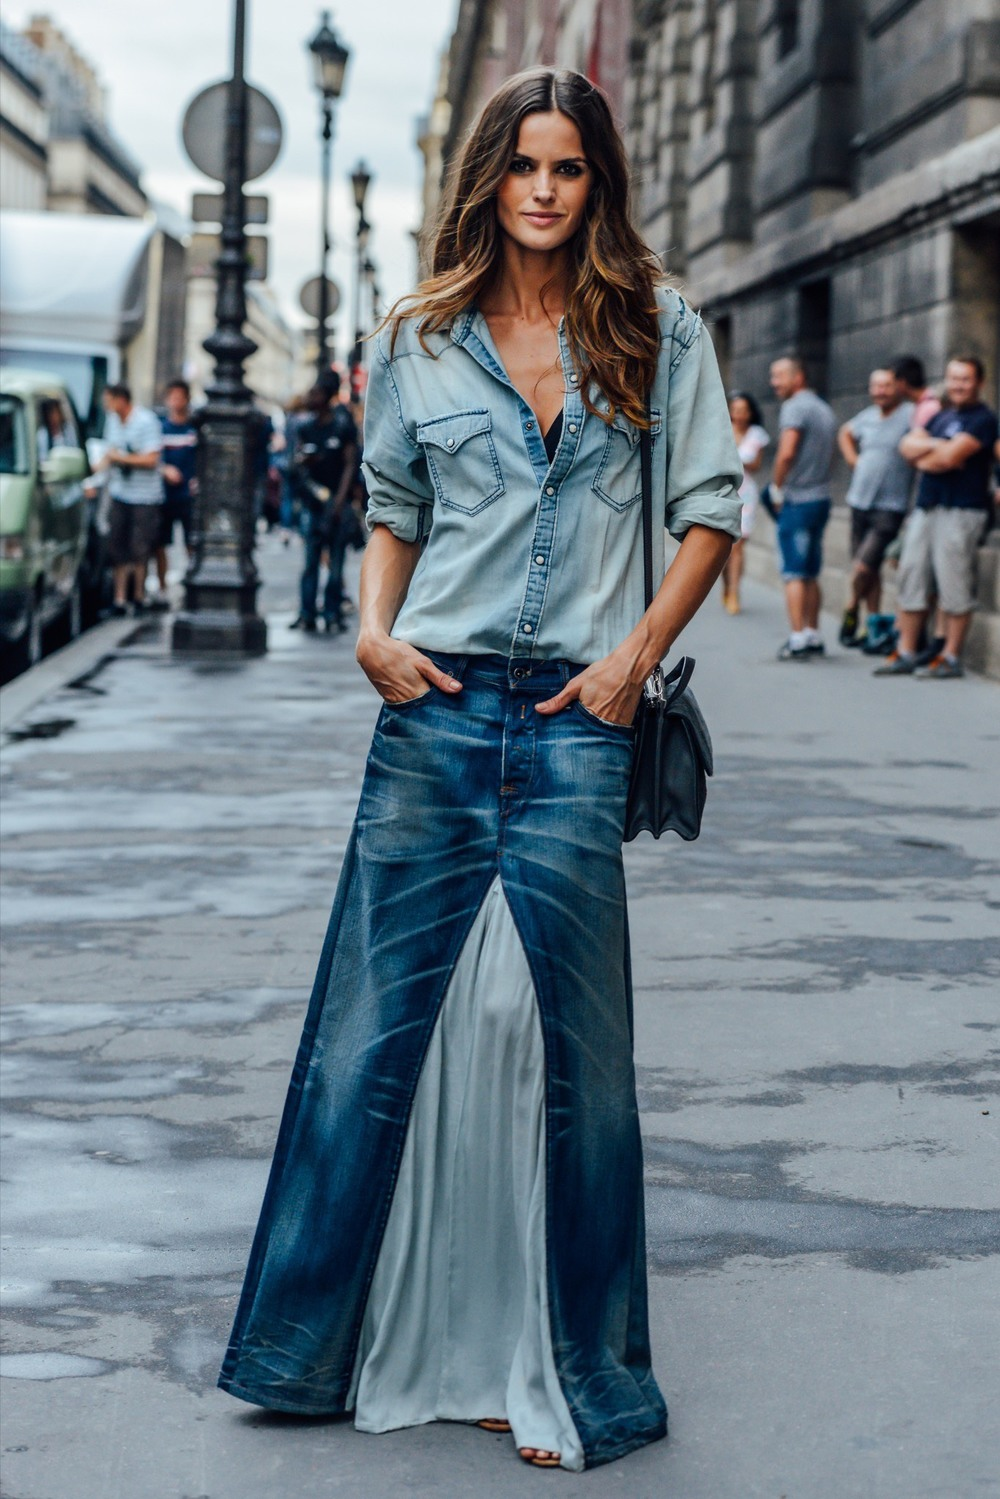 08-fall-2015-couture-street-style-07.jpg